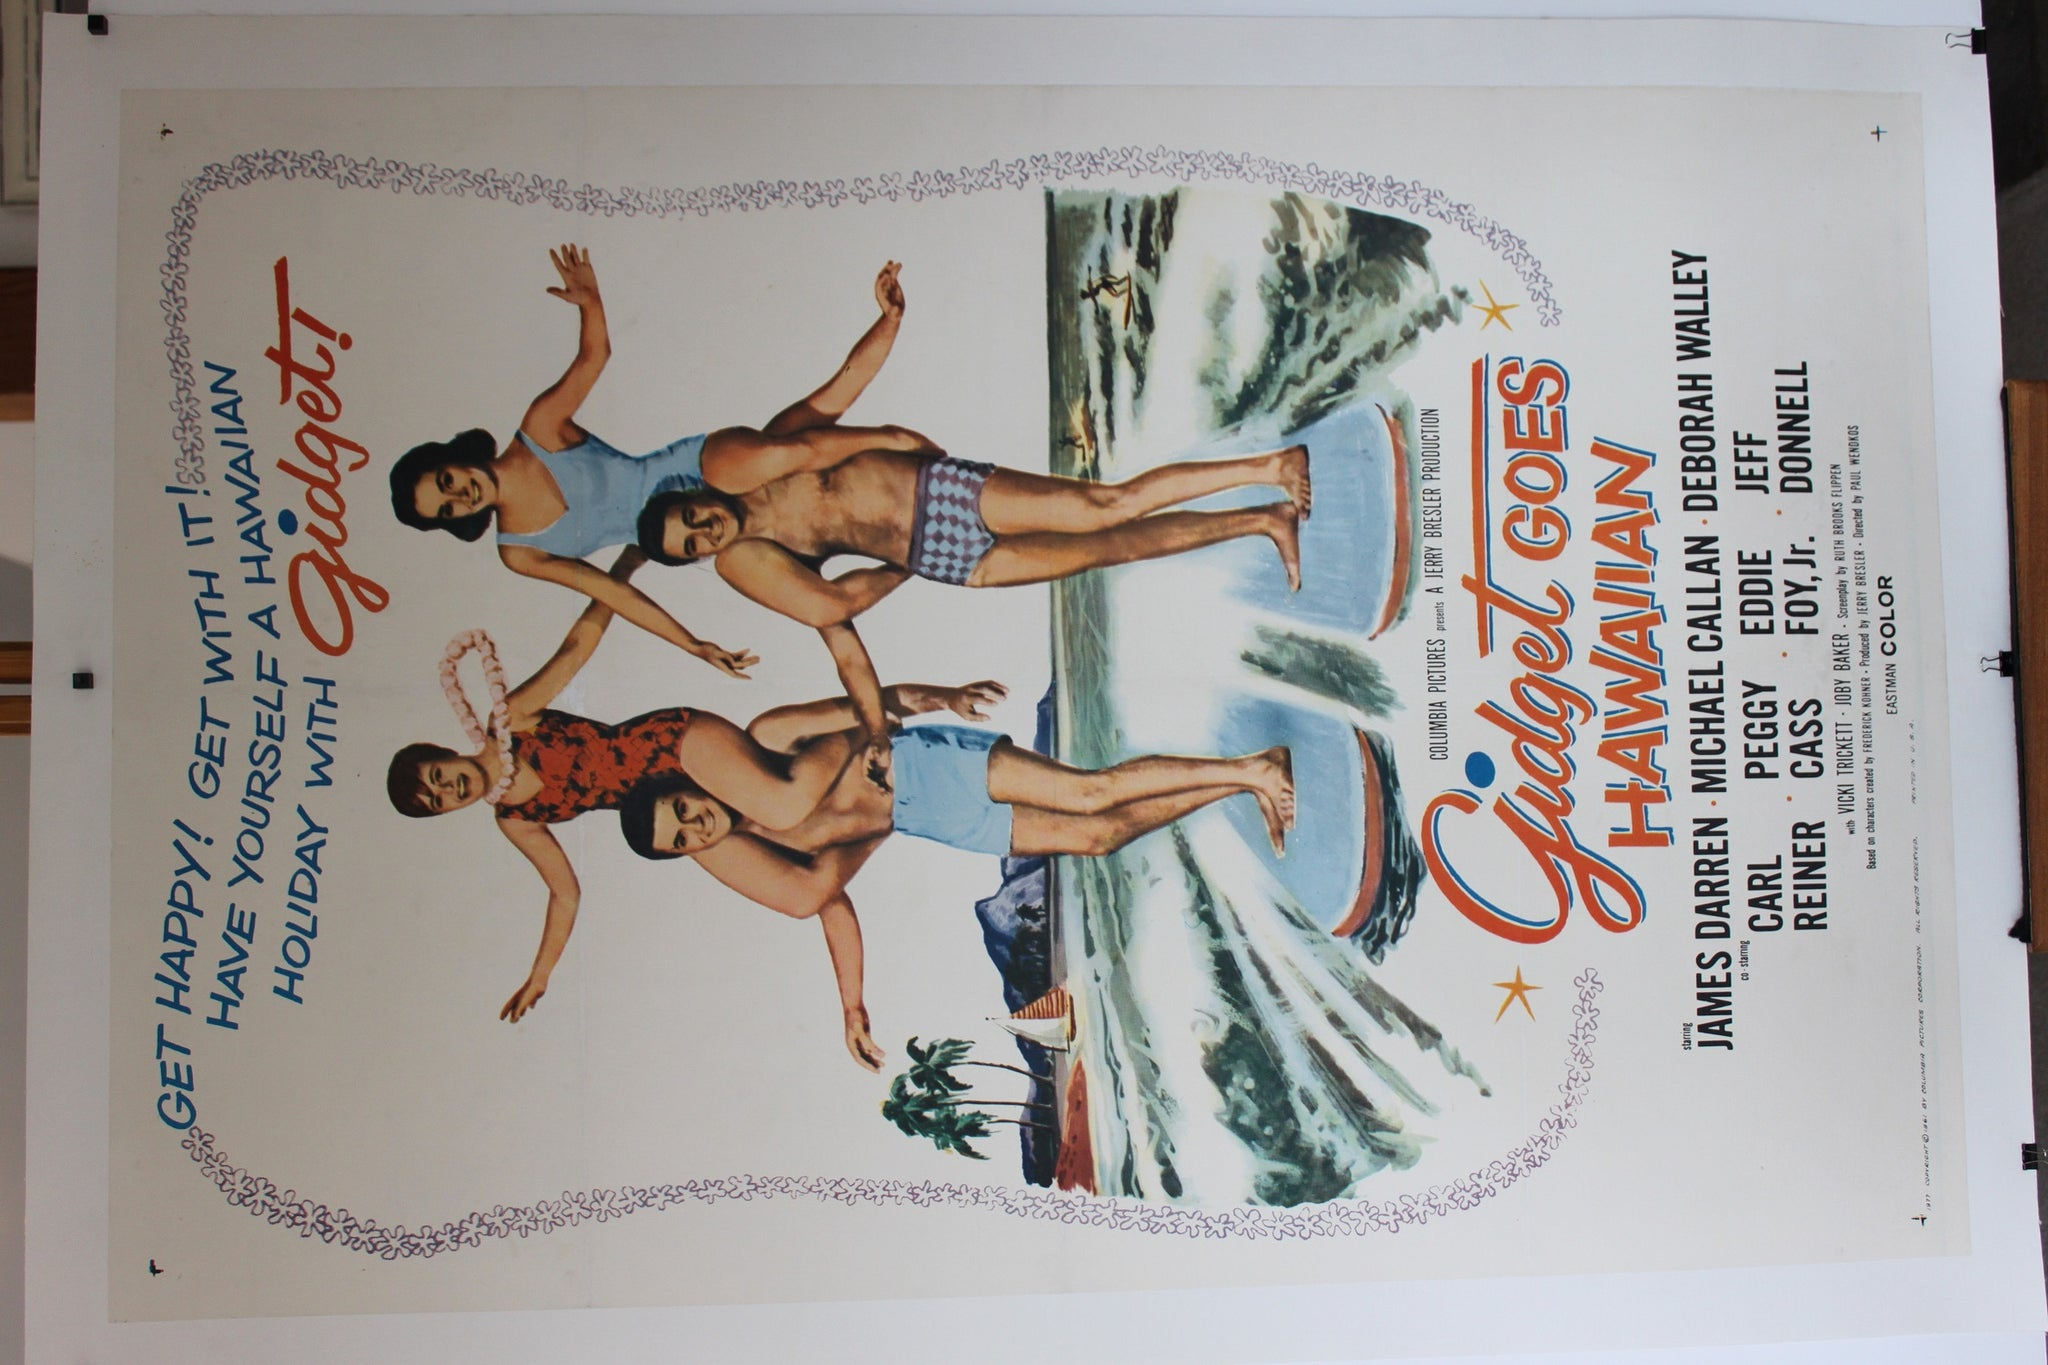 Gidget Goes Hawaiian. Original US One sheet. 1961